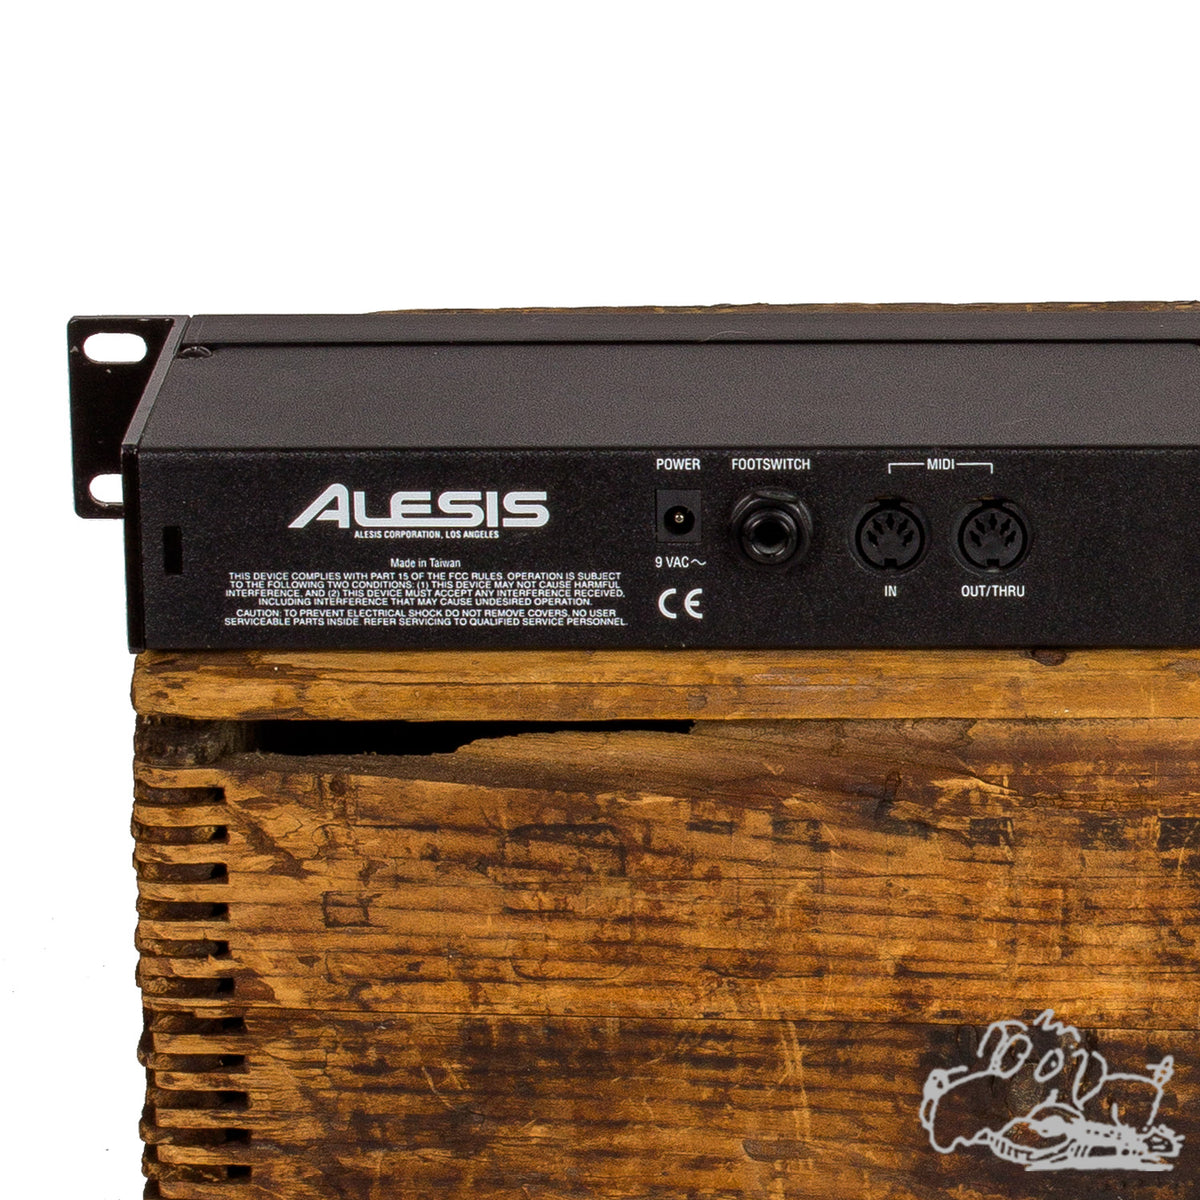 Used Alesis Studio Electronics Microverb 4 Preset/Programable 18 Bit Signal Processing